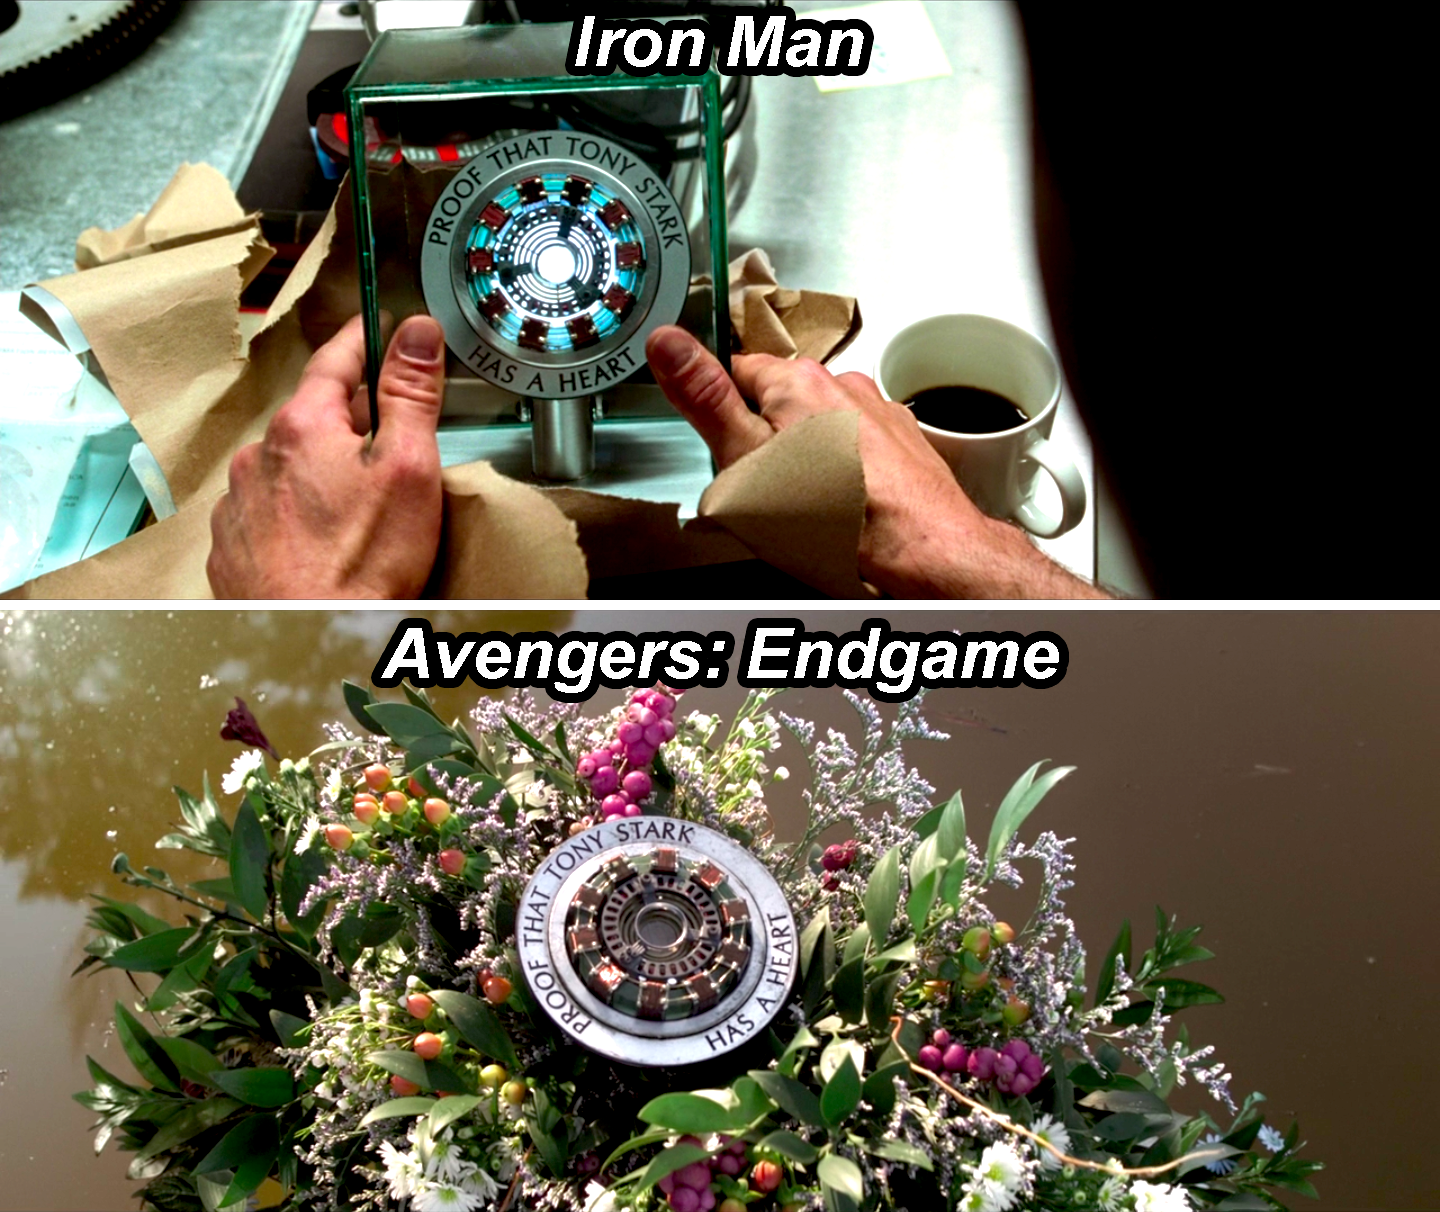 "The arc reactor with an engraving that says, ""Proof that Tony Stark has a heart,"" first lit and in a glass box in Iron Man, and then unlit and resting on a bouquet in Endgame"